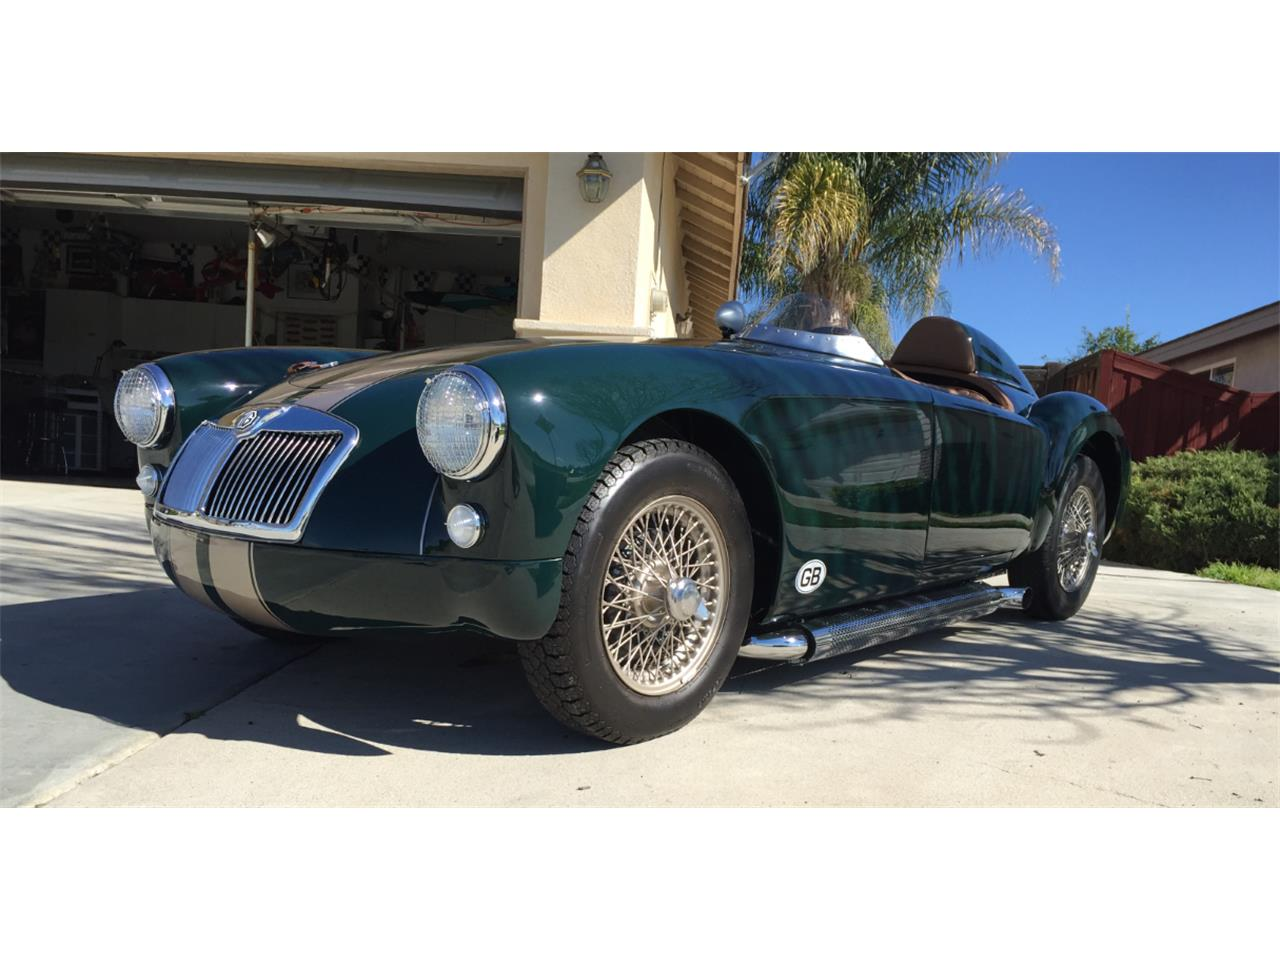 Large Picture of 1957 MG MGA located in Hemet California - $35,000.00 - KNI3